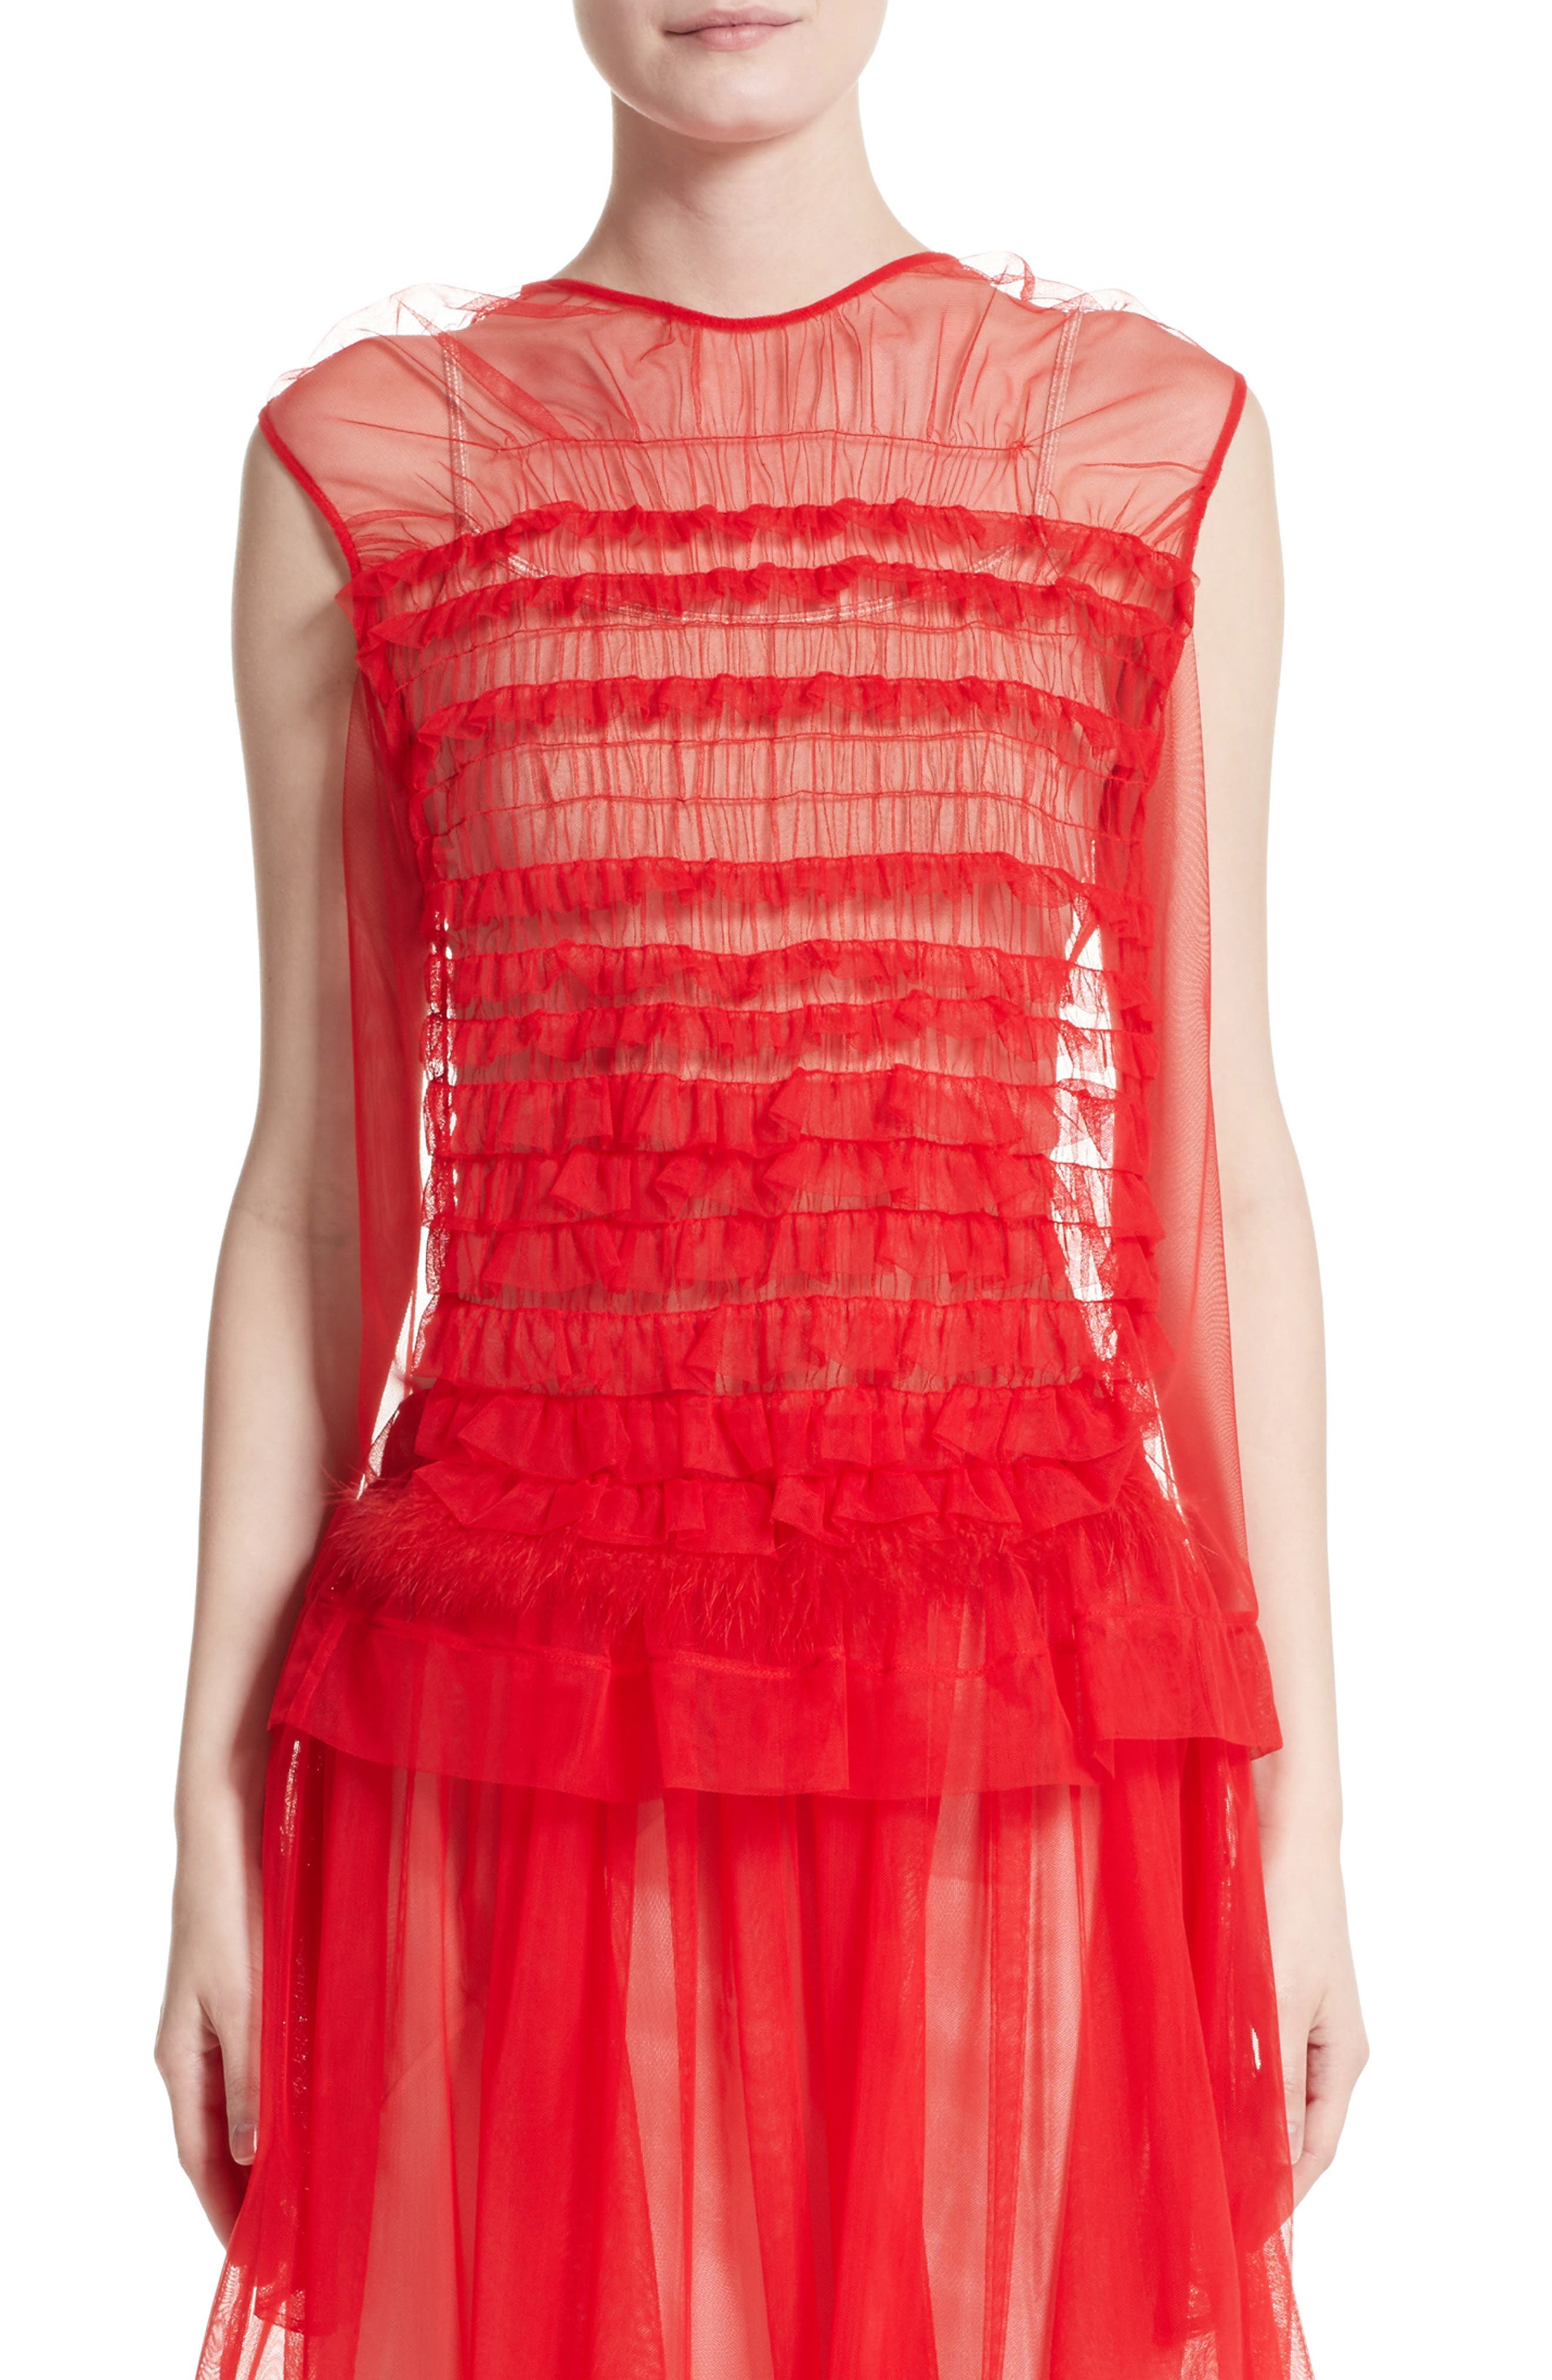 Simone Rocha Teddy Feather Trim Tulle Top (Nordstrom Exclusive)